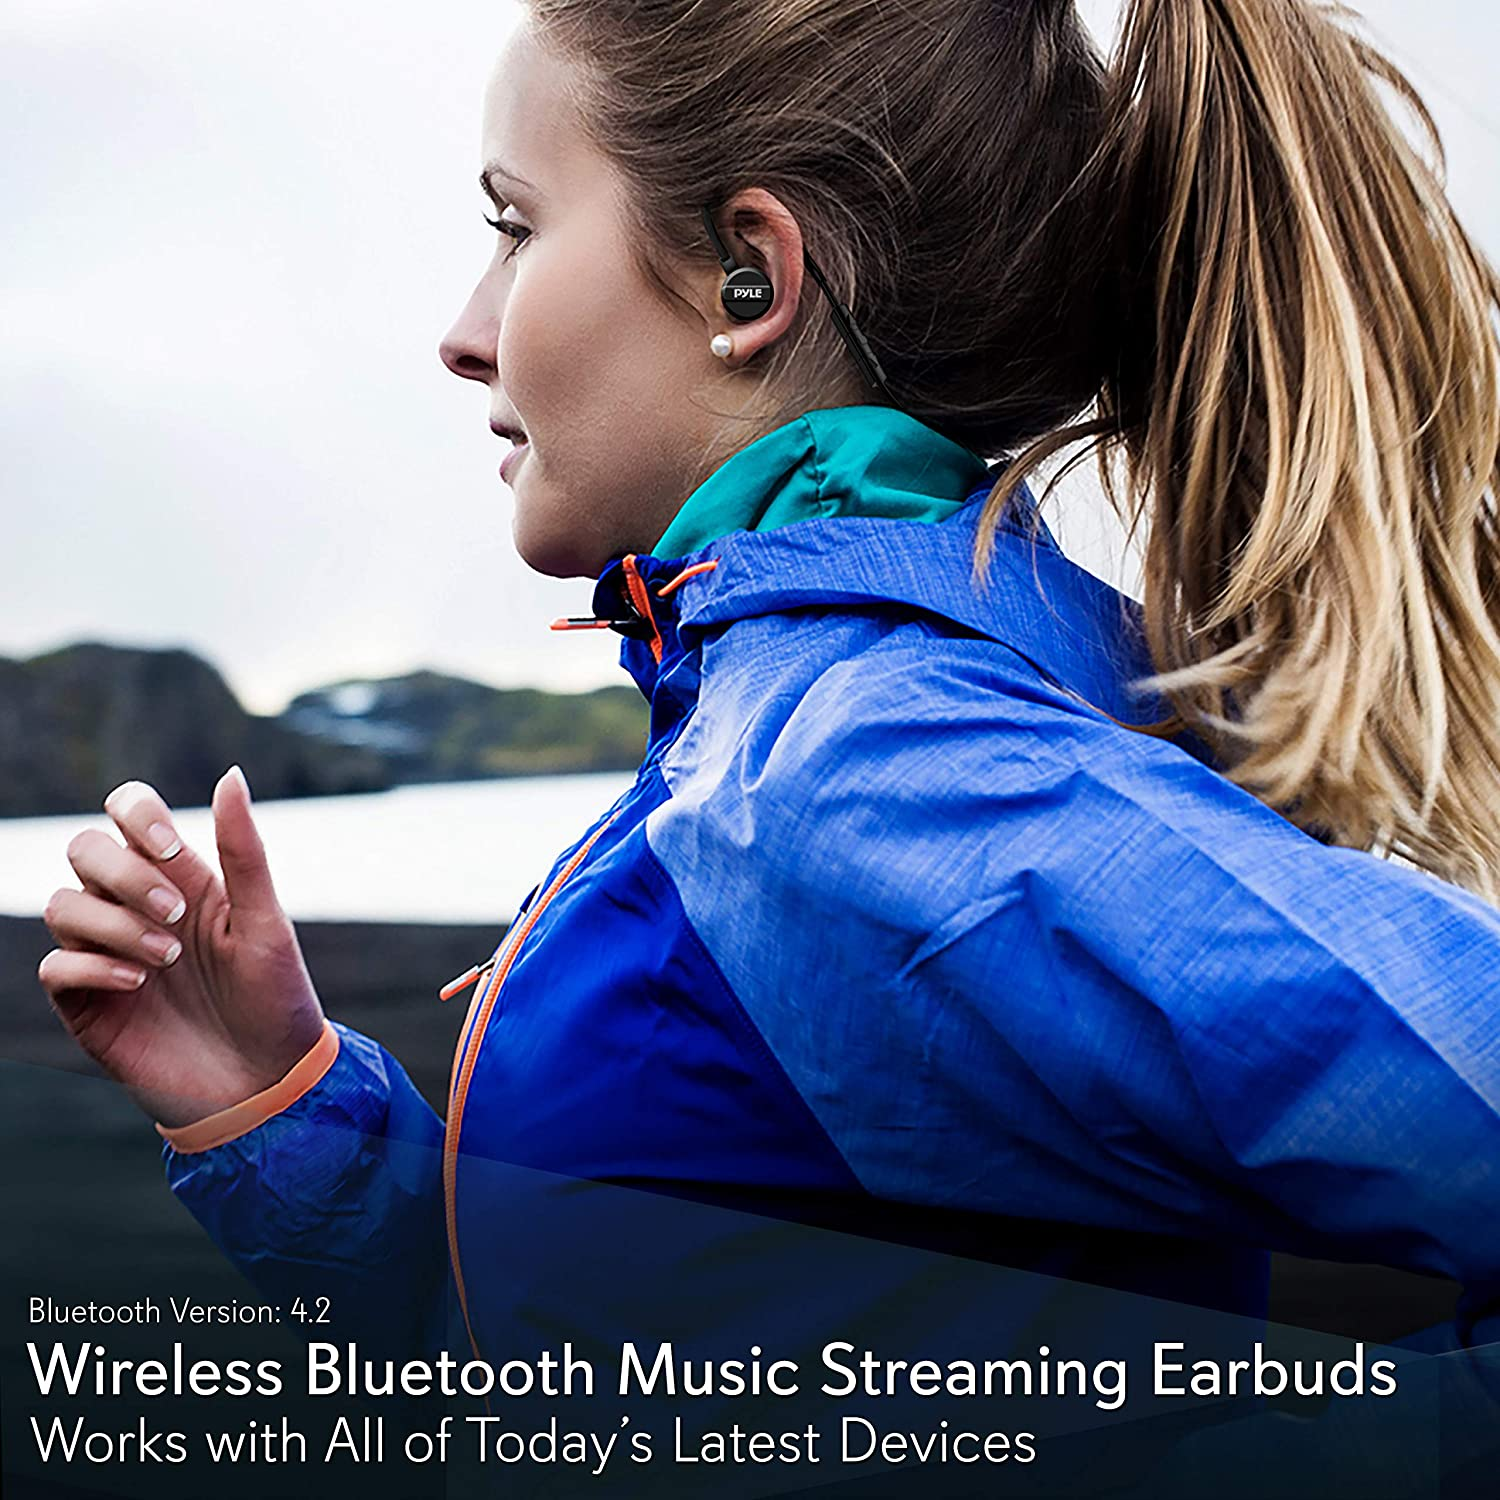 in Ear Wireless Bluetooth Headphones – Waterproof Black Cordless Sports Earbuds Headset Earphones, Ear Buds Wireless Headphones w Microphone for Audio Video Running Gym Workout Gaming – Pyle PSWPHP43